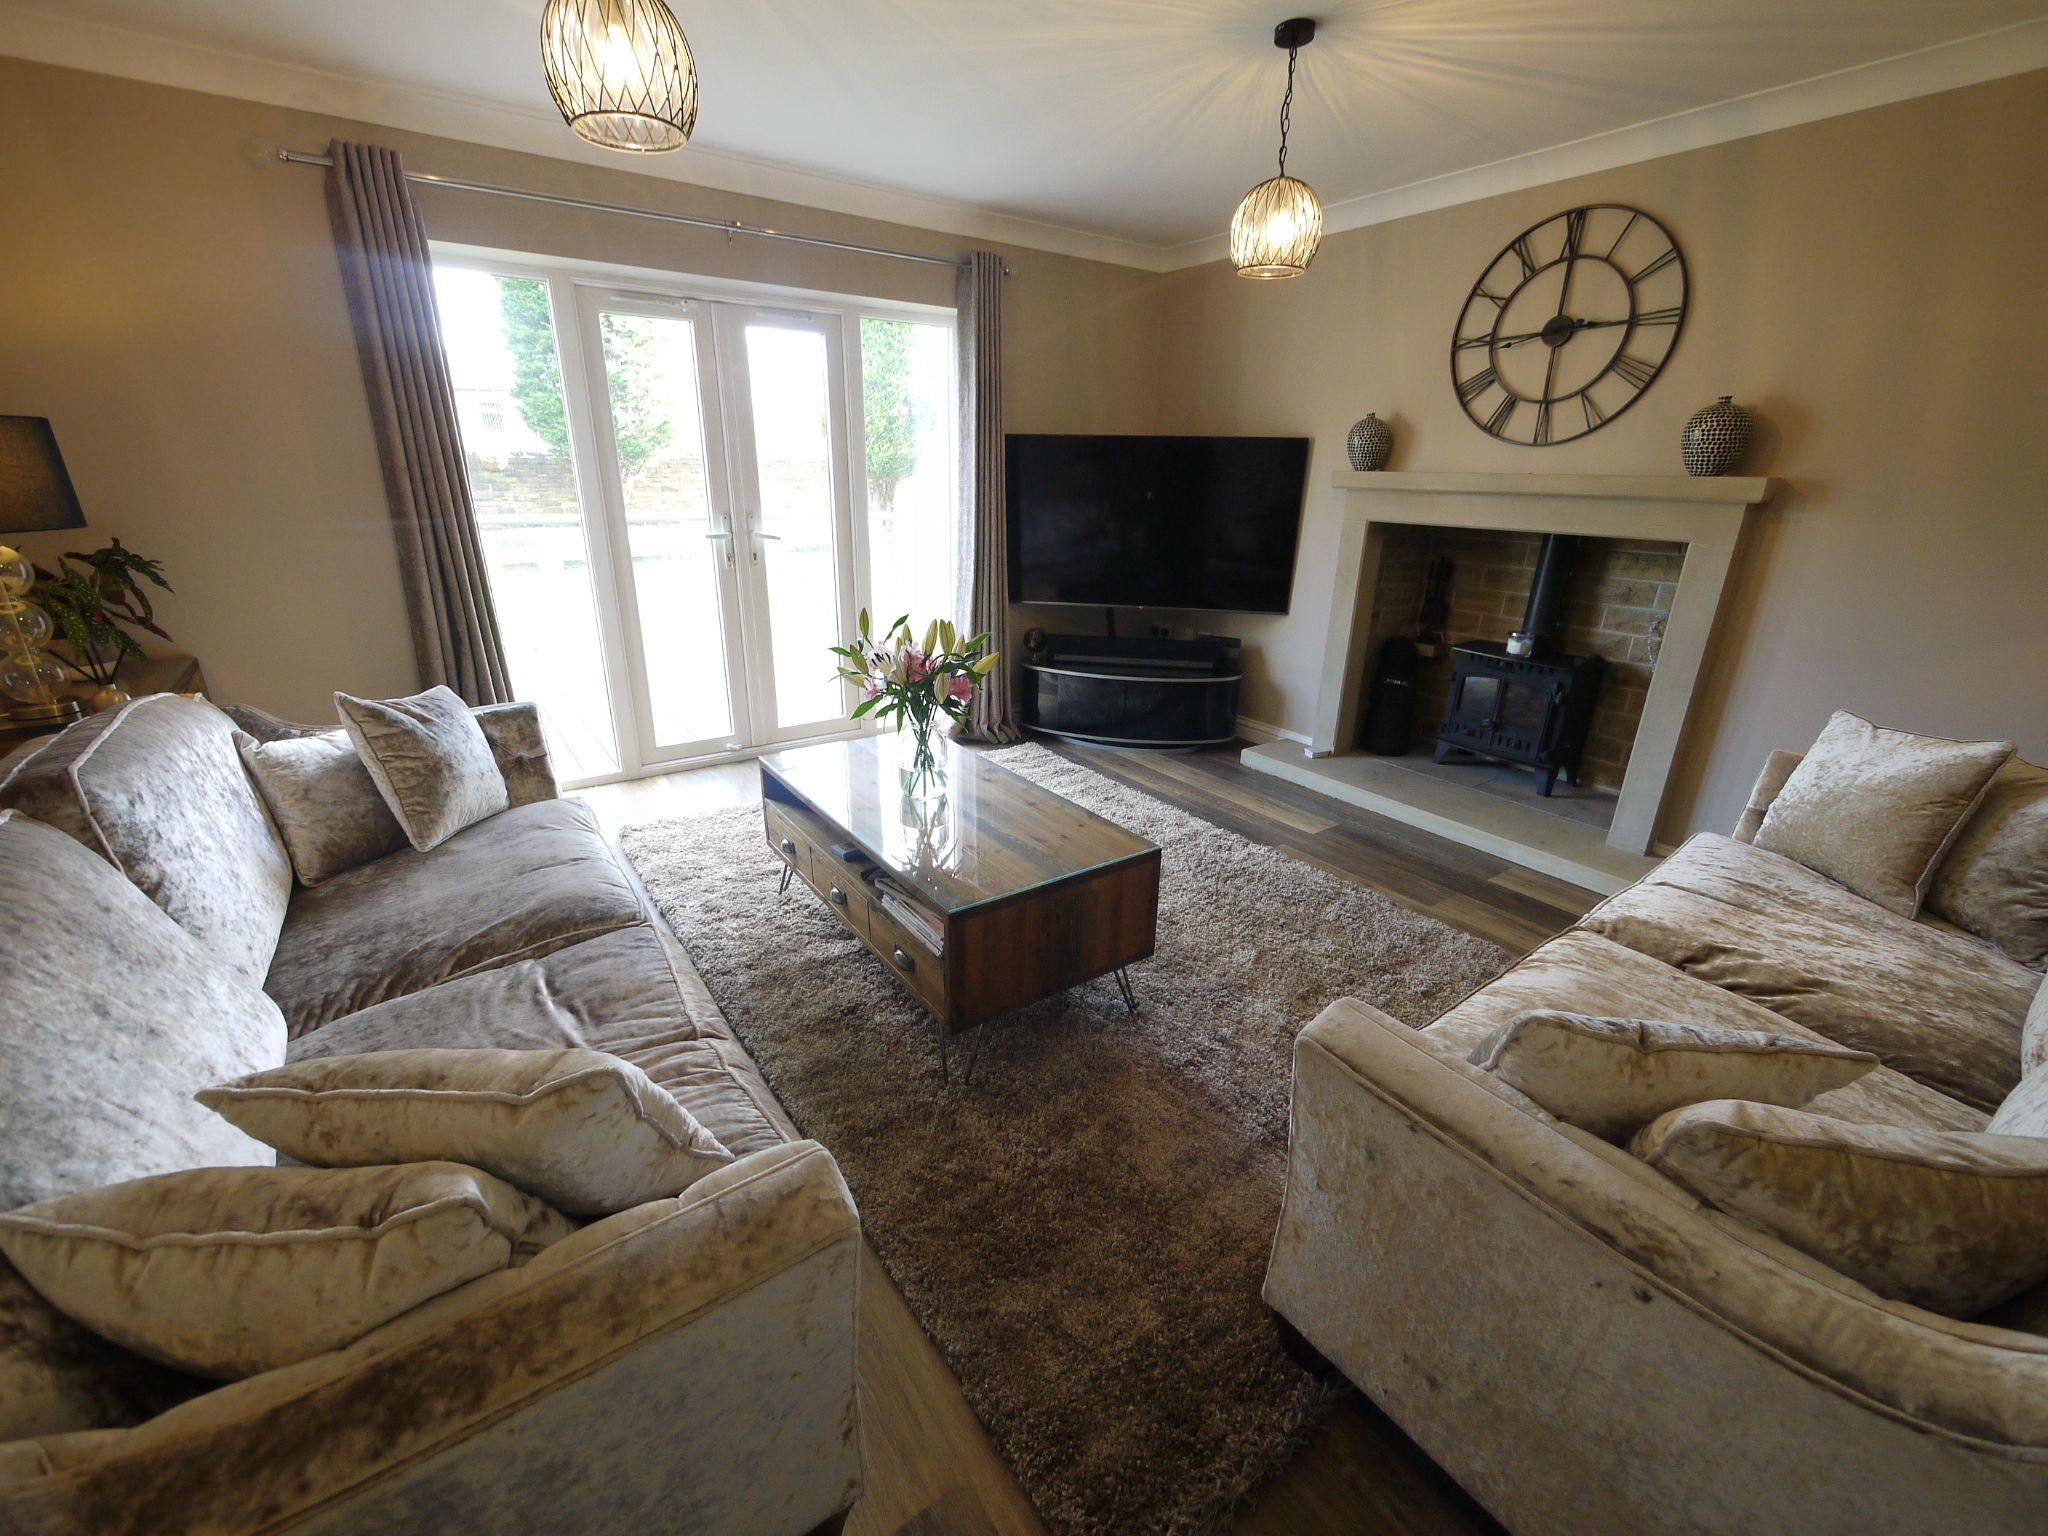 4 bedroom detached house SSTC in Halifax - Lounge 2.